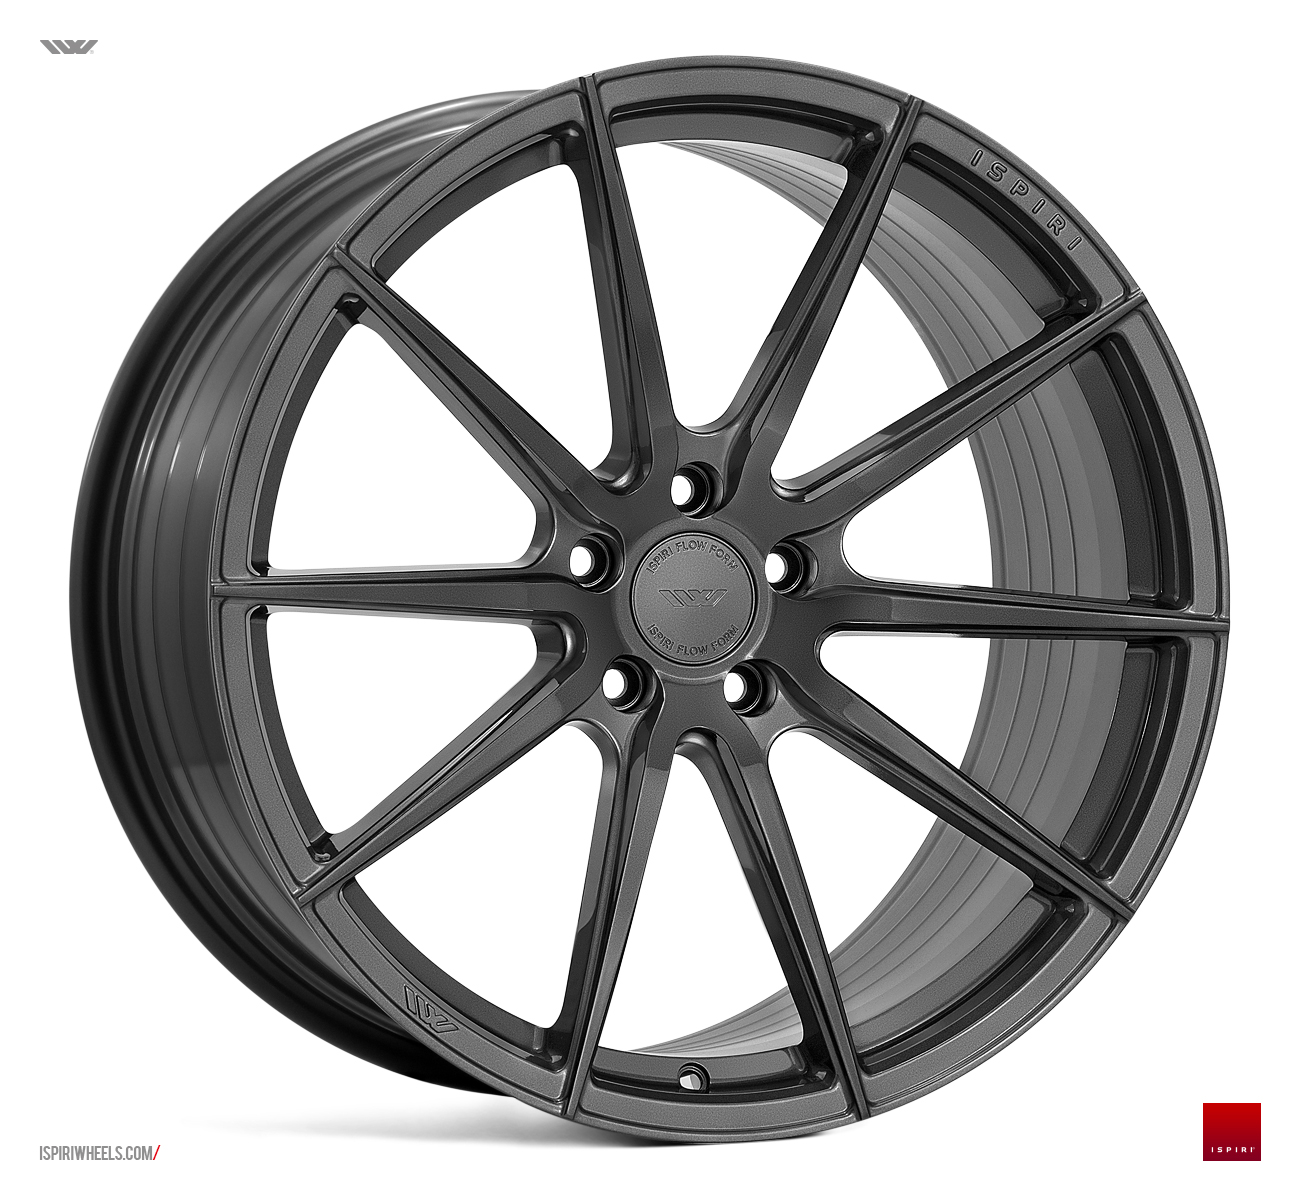 "NEW 20"" ISPIRI FFR1 MULTI-SPOKE ALLOY WHEELS IN CARBON GRAPHITE, DEEPER CONCAVE 10"" REARS"